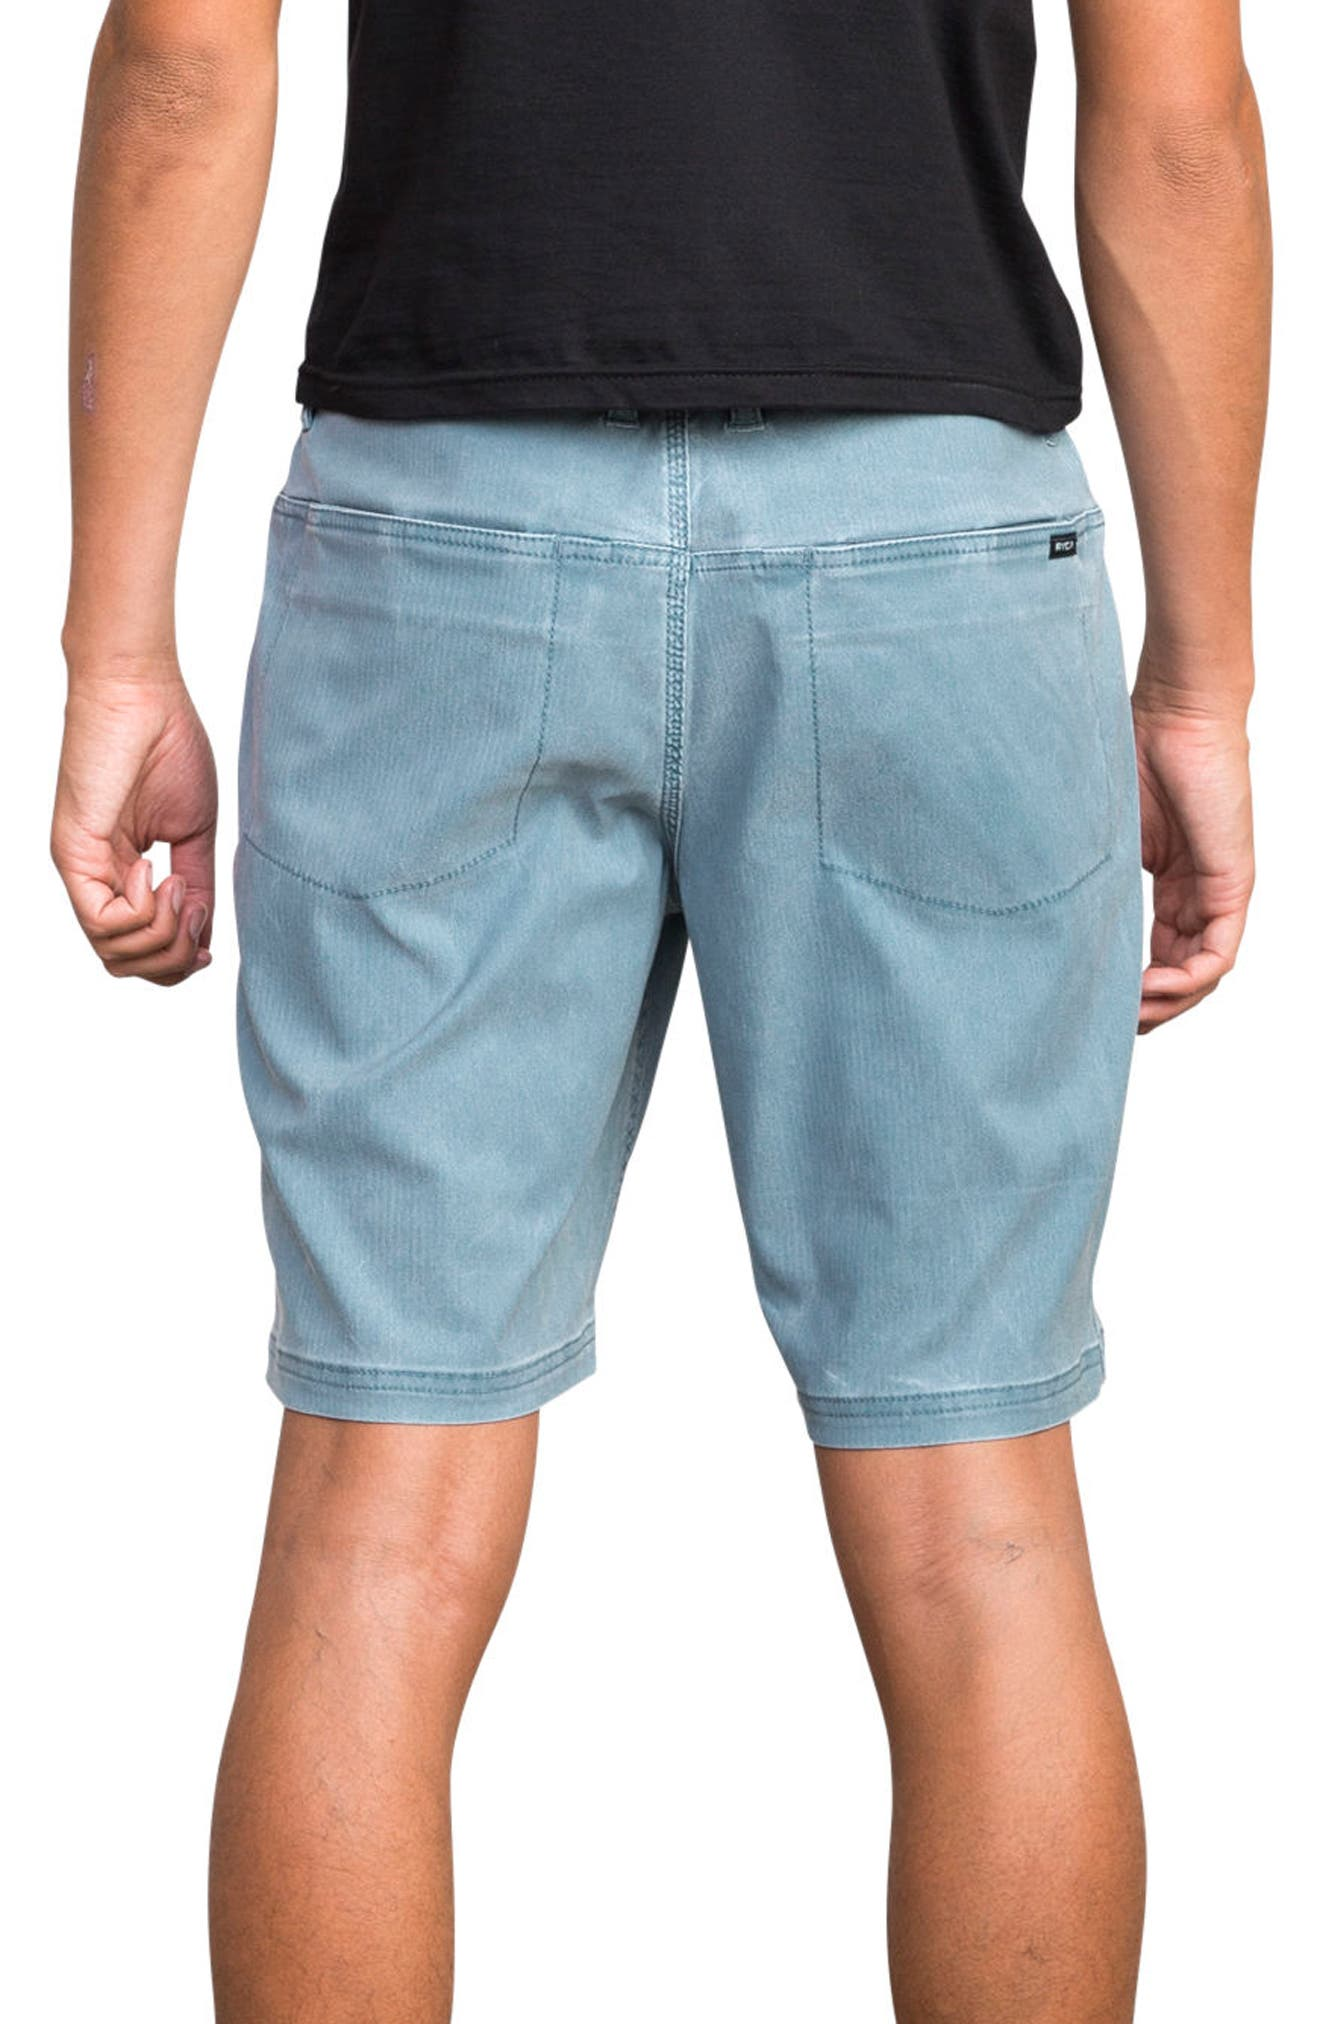 Django Hybrid Shorts,                             Alternate thumbnail 2, color,                             Blue Slate